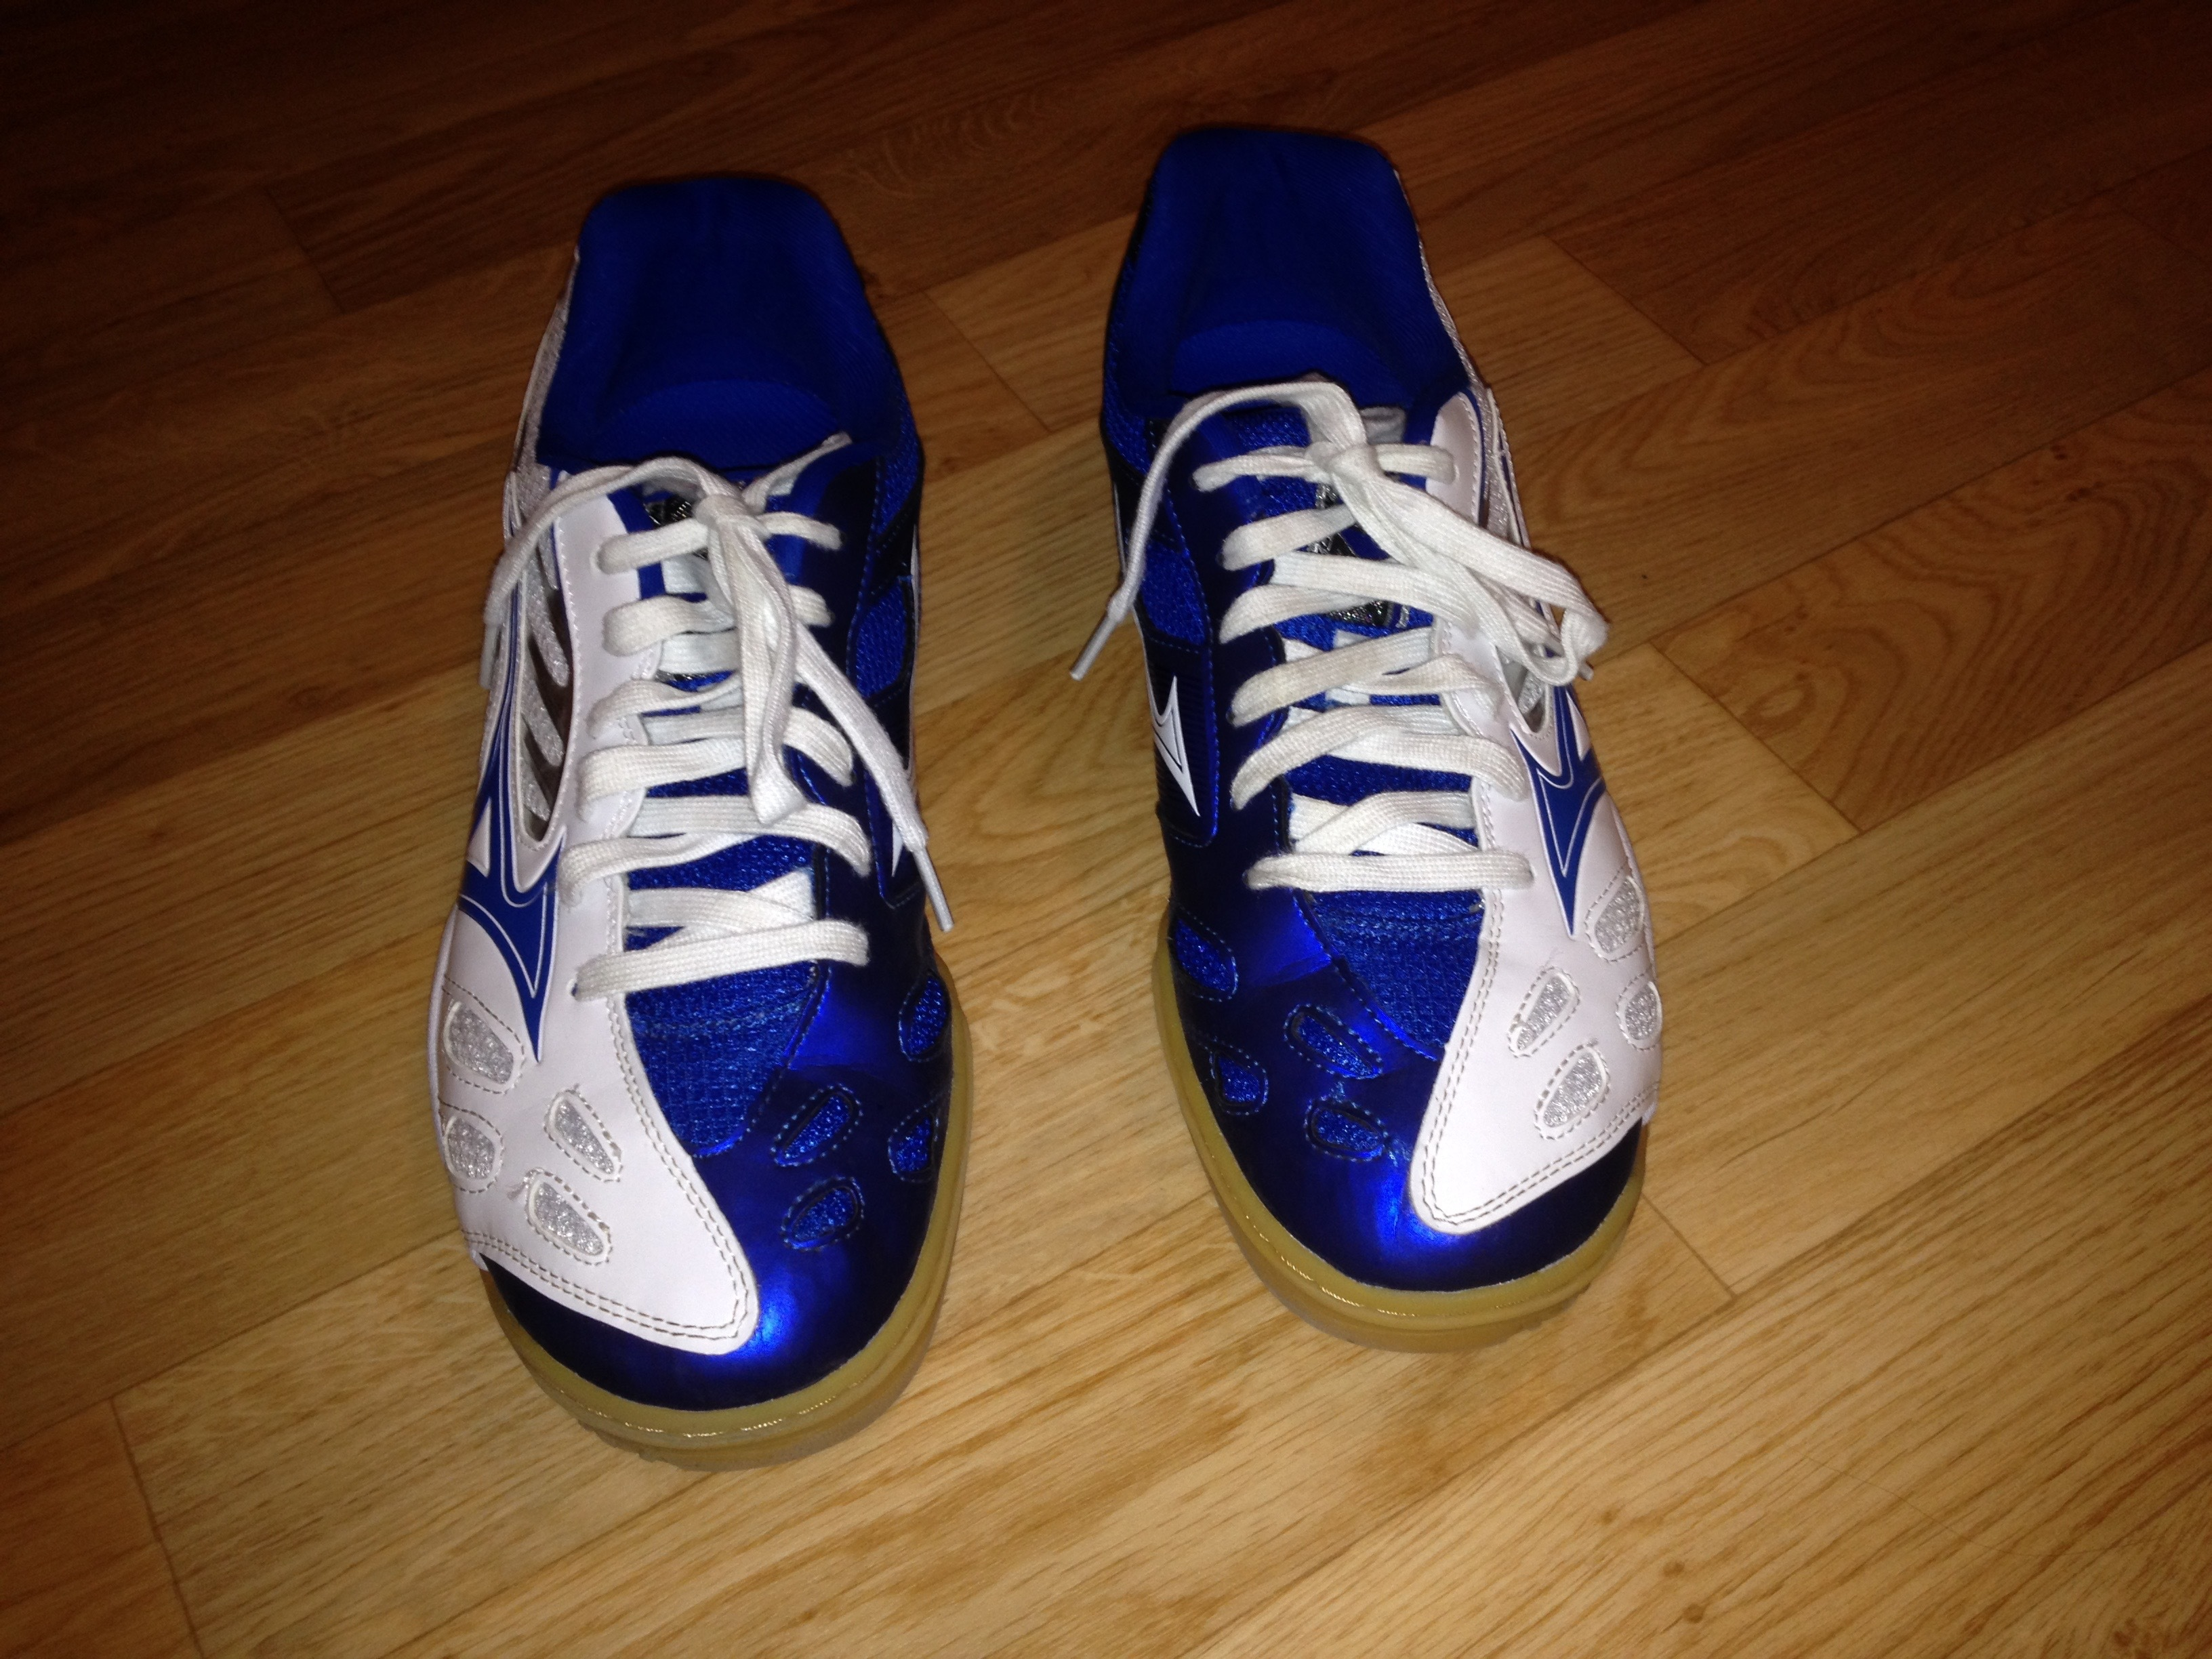 5 Taille Ventes 42 gt; Wave 4 44 Euros Mizuno Chaussures Medal pYqU4I